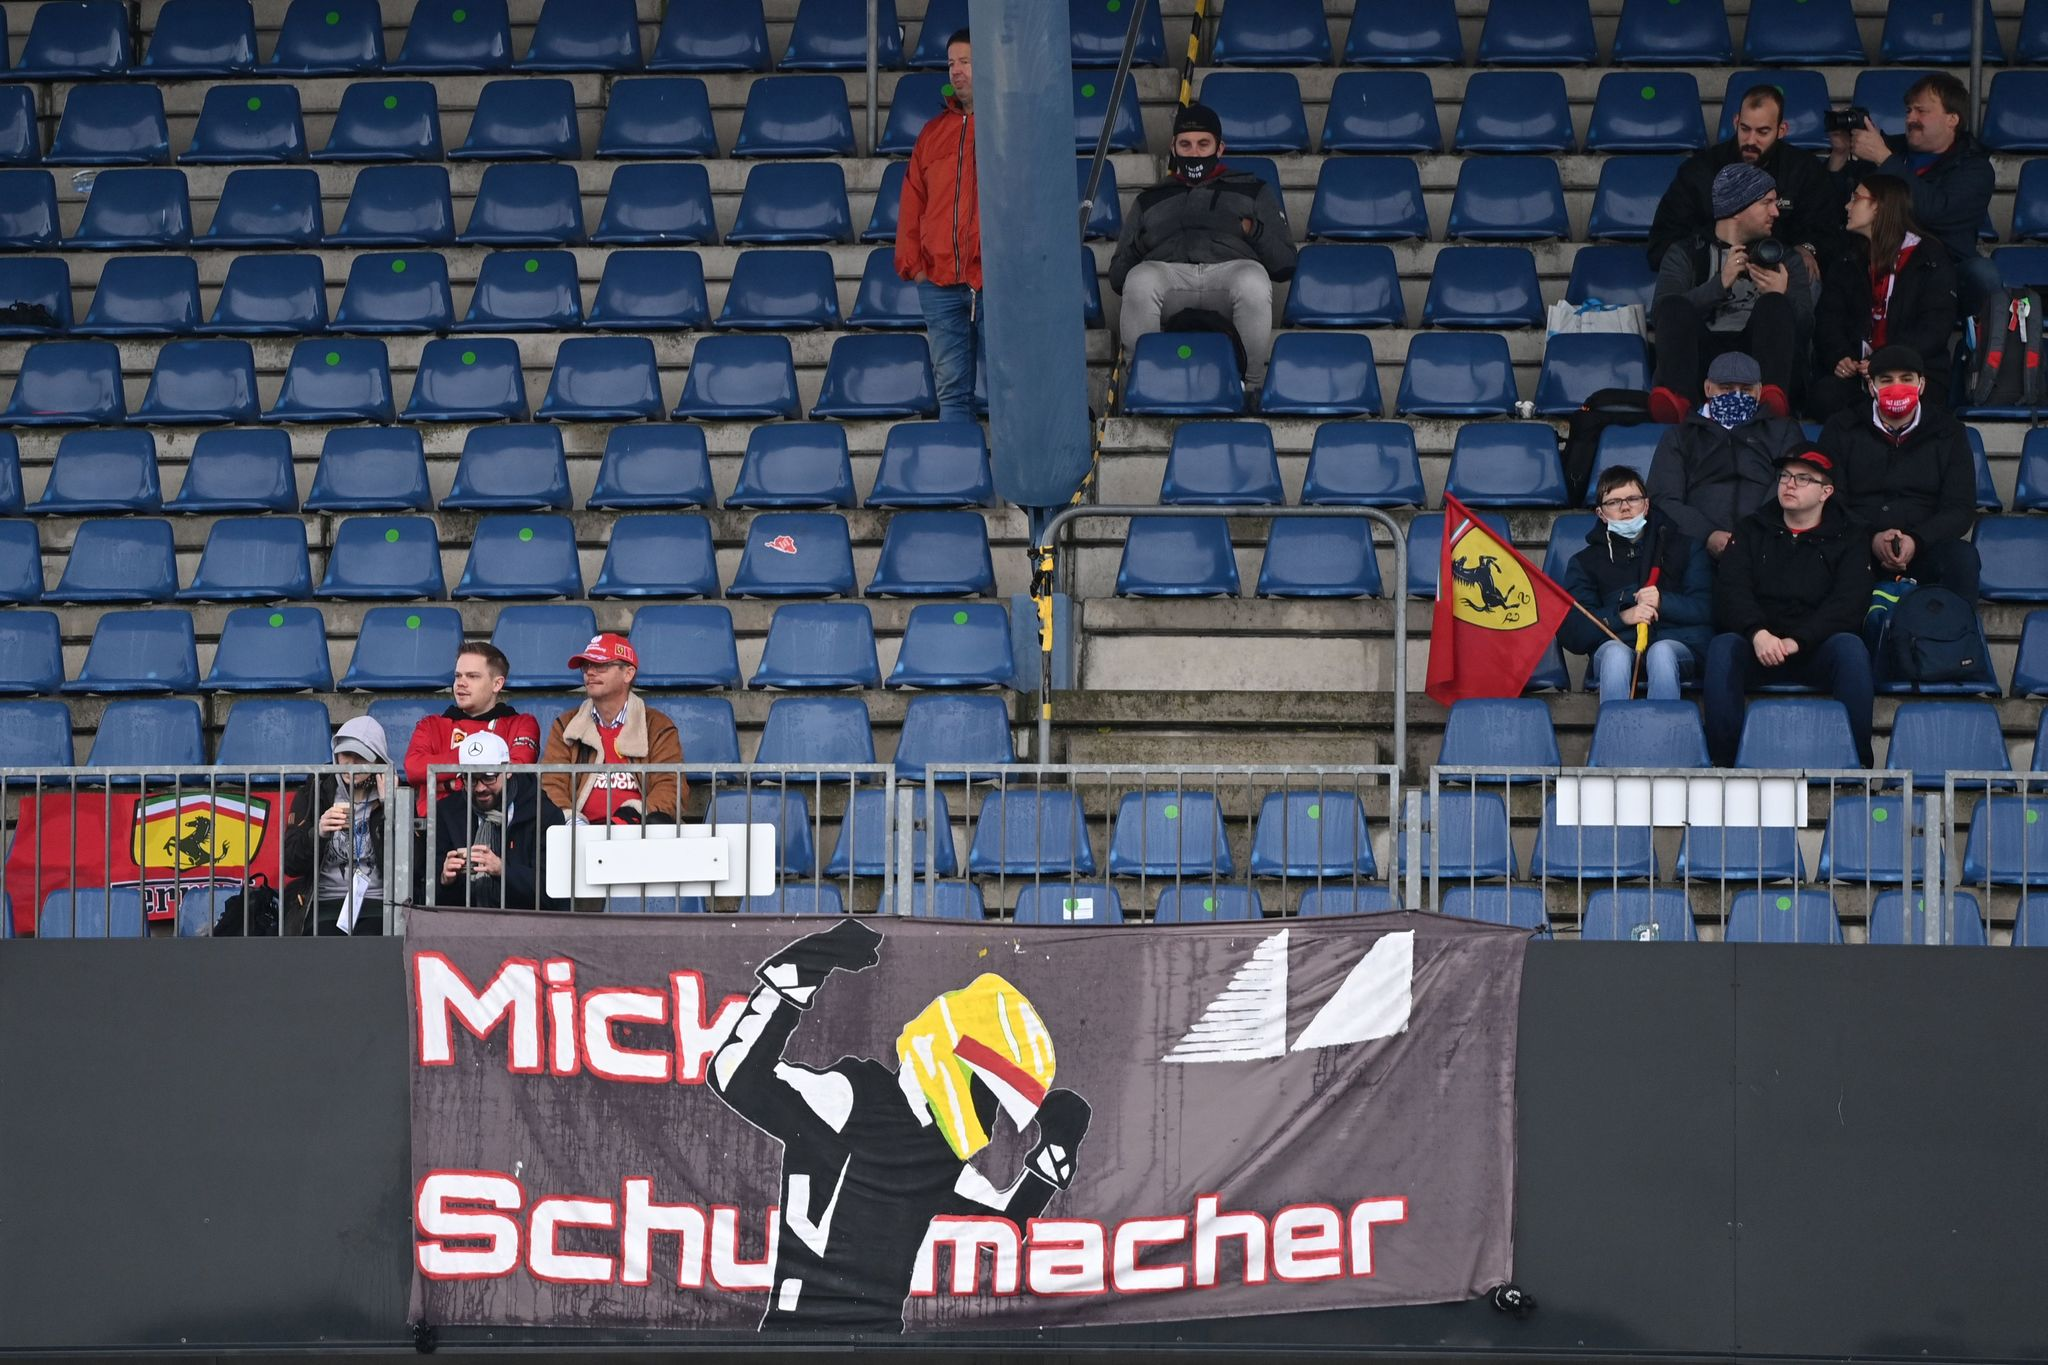 A banner for Alfa Romeos German driver lt;HIT gt;Mick lt;/HIT gt; lt;HIT gt;Schumacher lt;/HIT gt; hangs from the stands while spectators wait as the start of the first practice session is delayed at the Nuerburgring circuit in Nuerburg, western Germany, on October 9, 2020, ahead of the German Formula One Eifel Grand Prix. (Photo by Ina Fassbender / POOL / AFP)